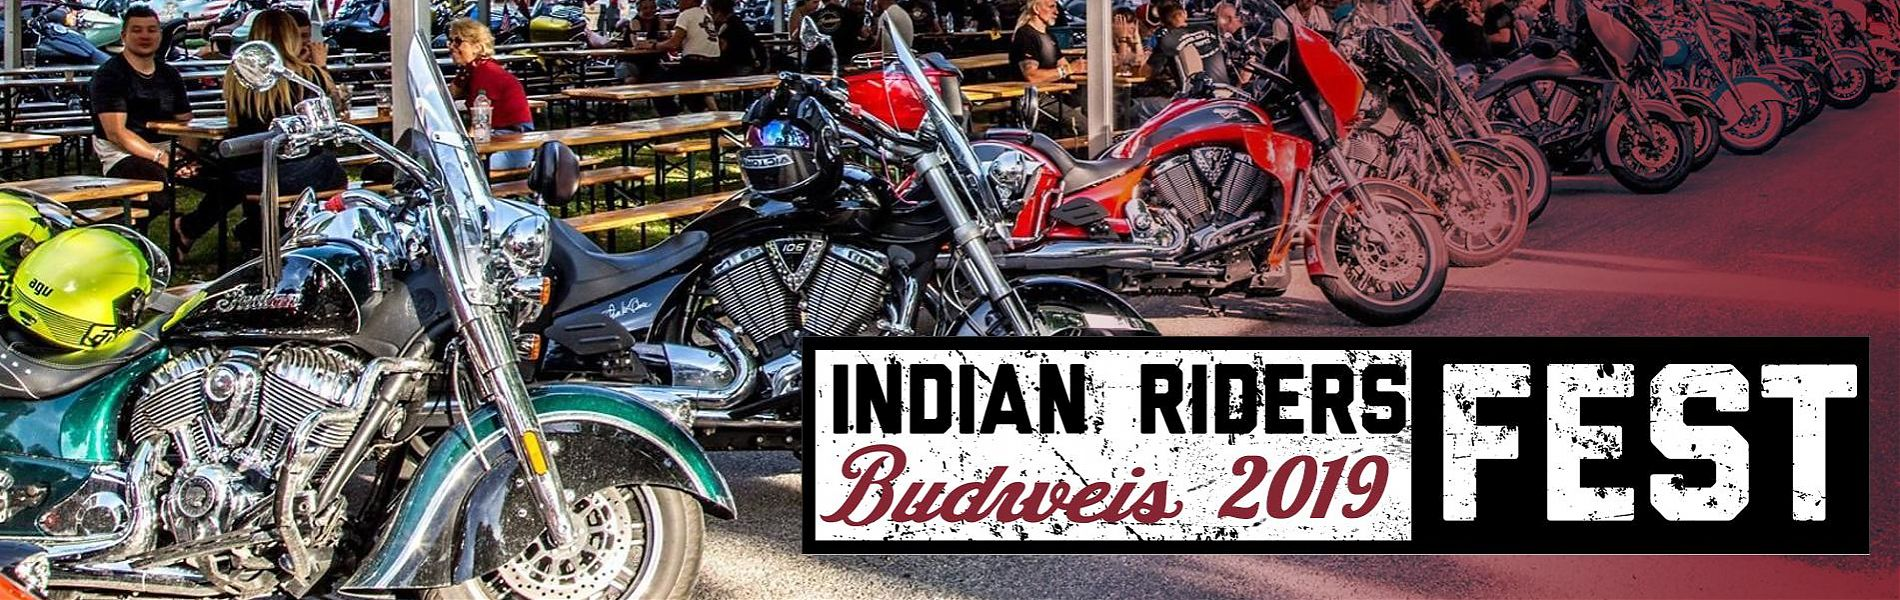 Indian Riders Fest Budweis 2019